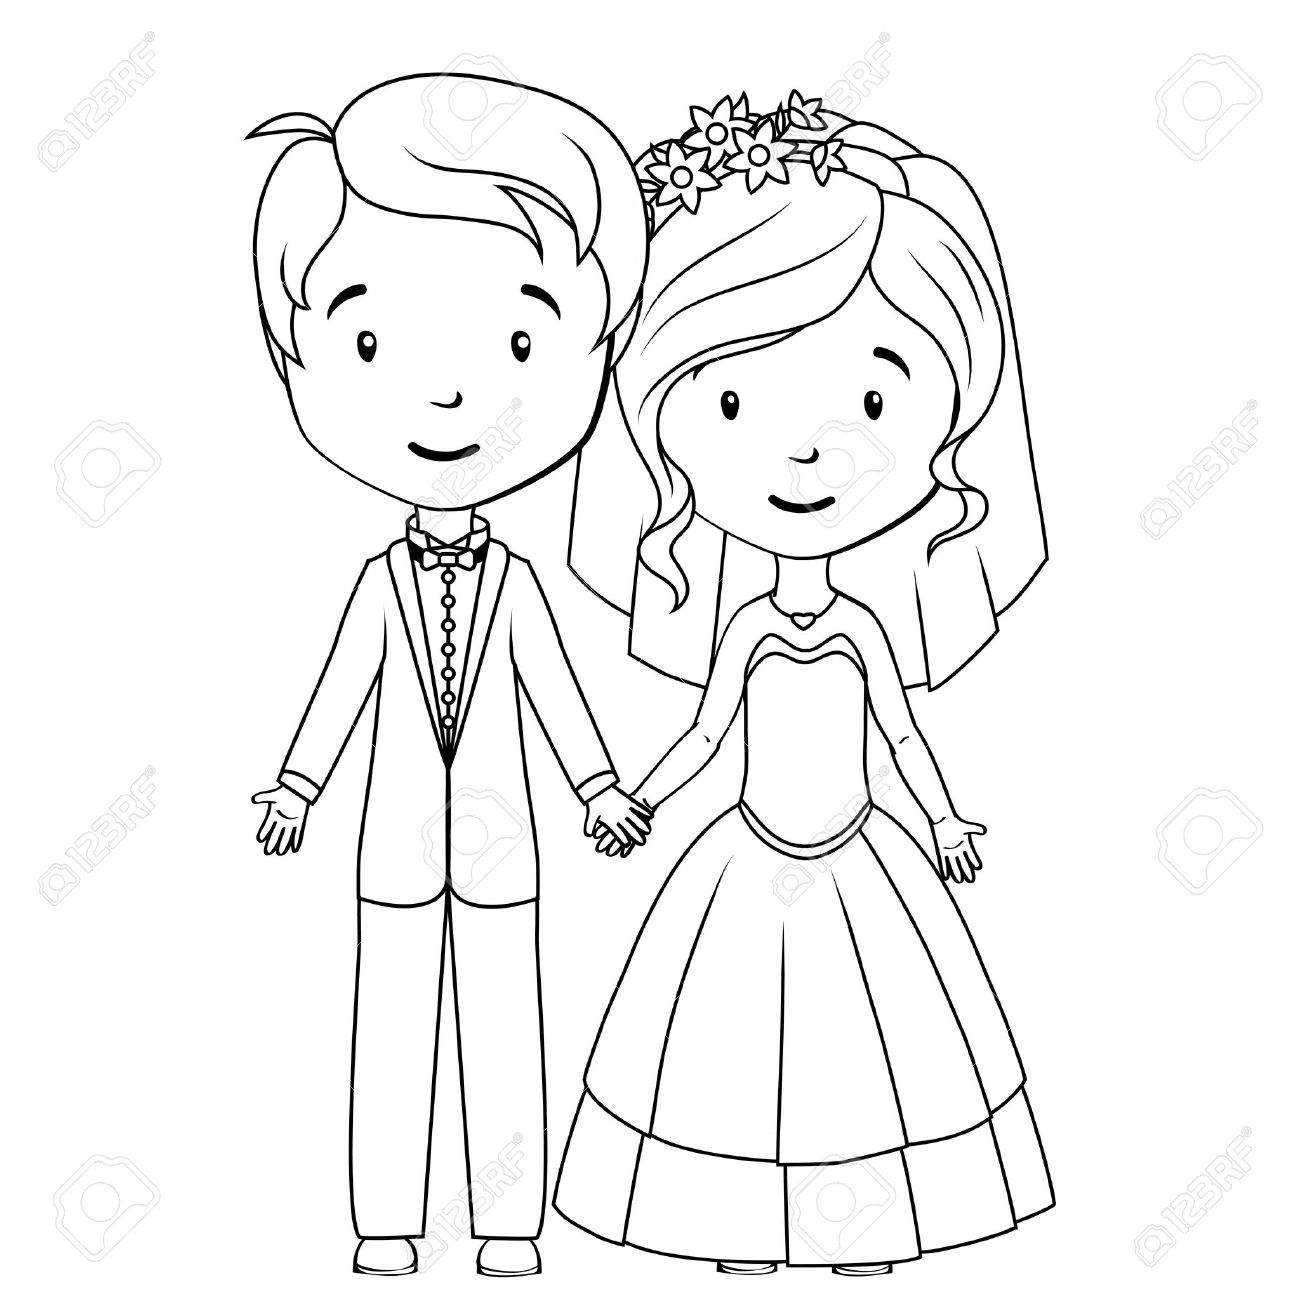 1300x1300 Coloring Book Cartoon Groom And Bride Royalty Free Cliparts